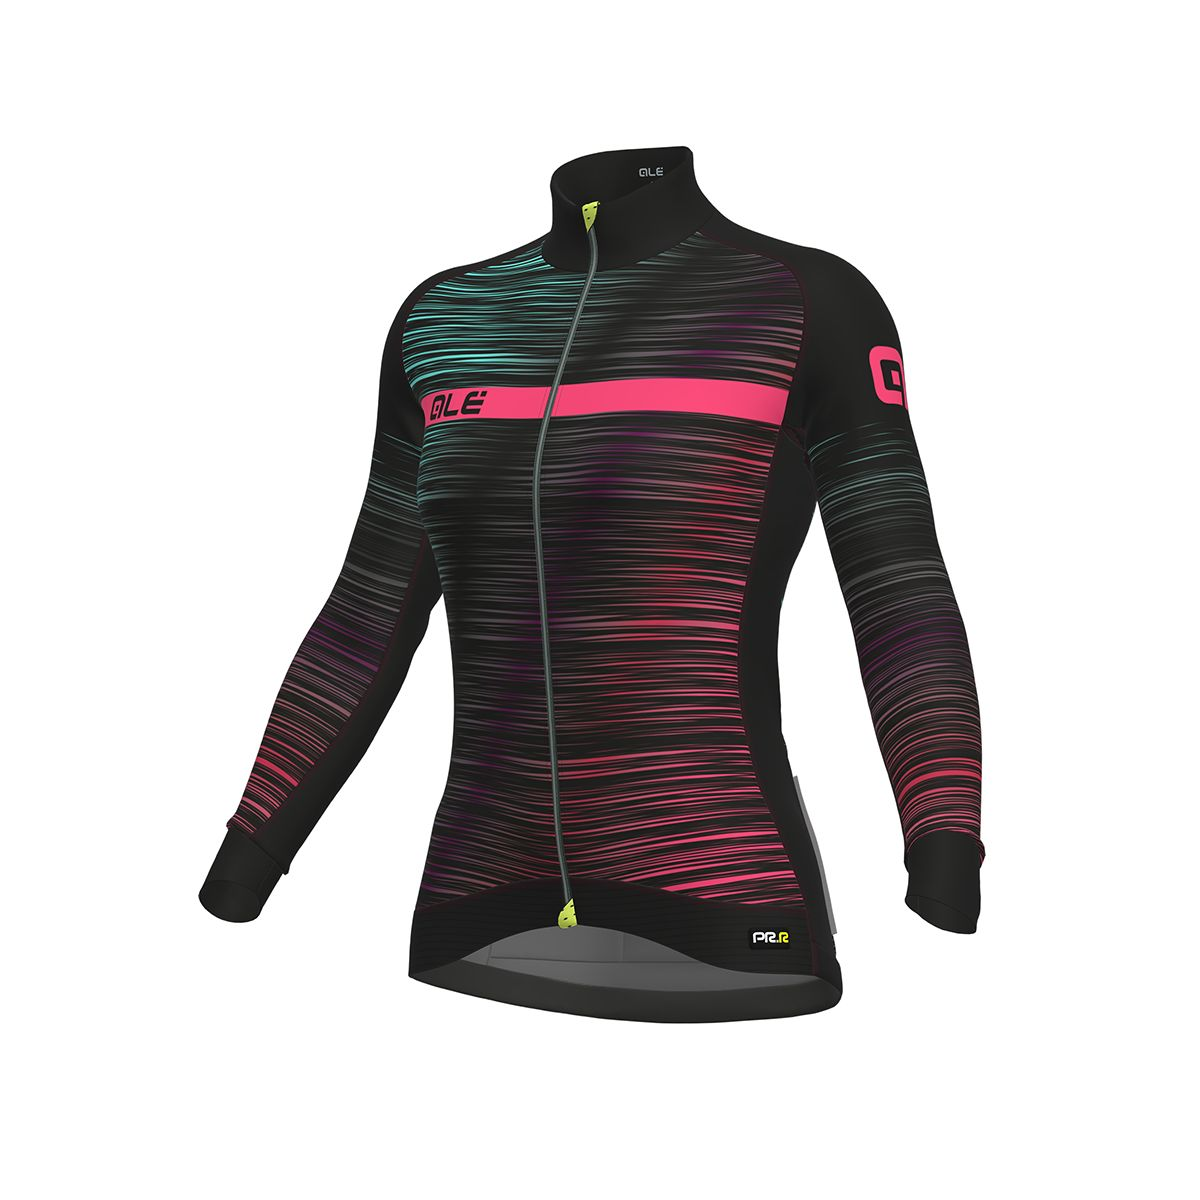 GRAPHICS PRR The End Jersey for women